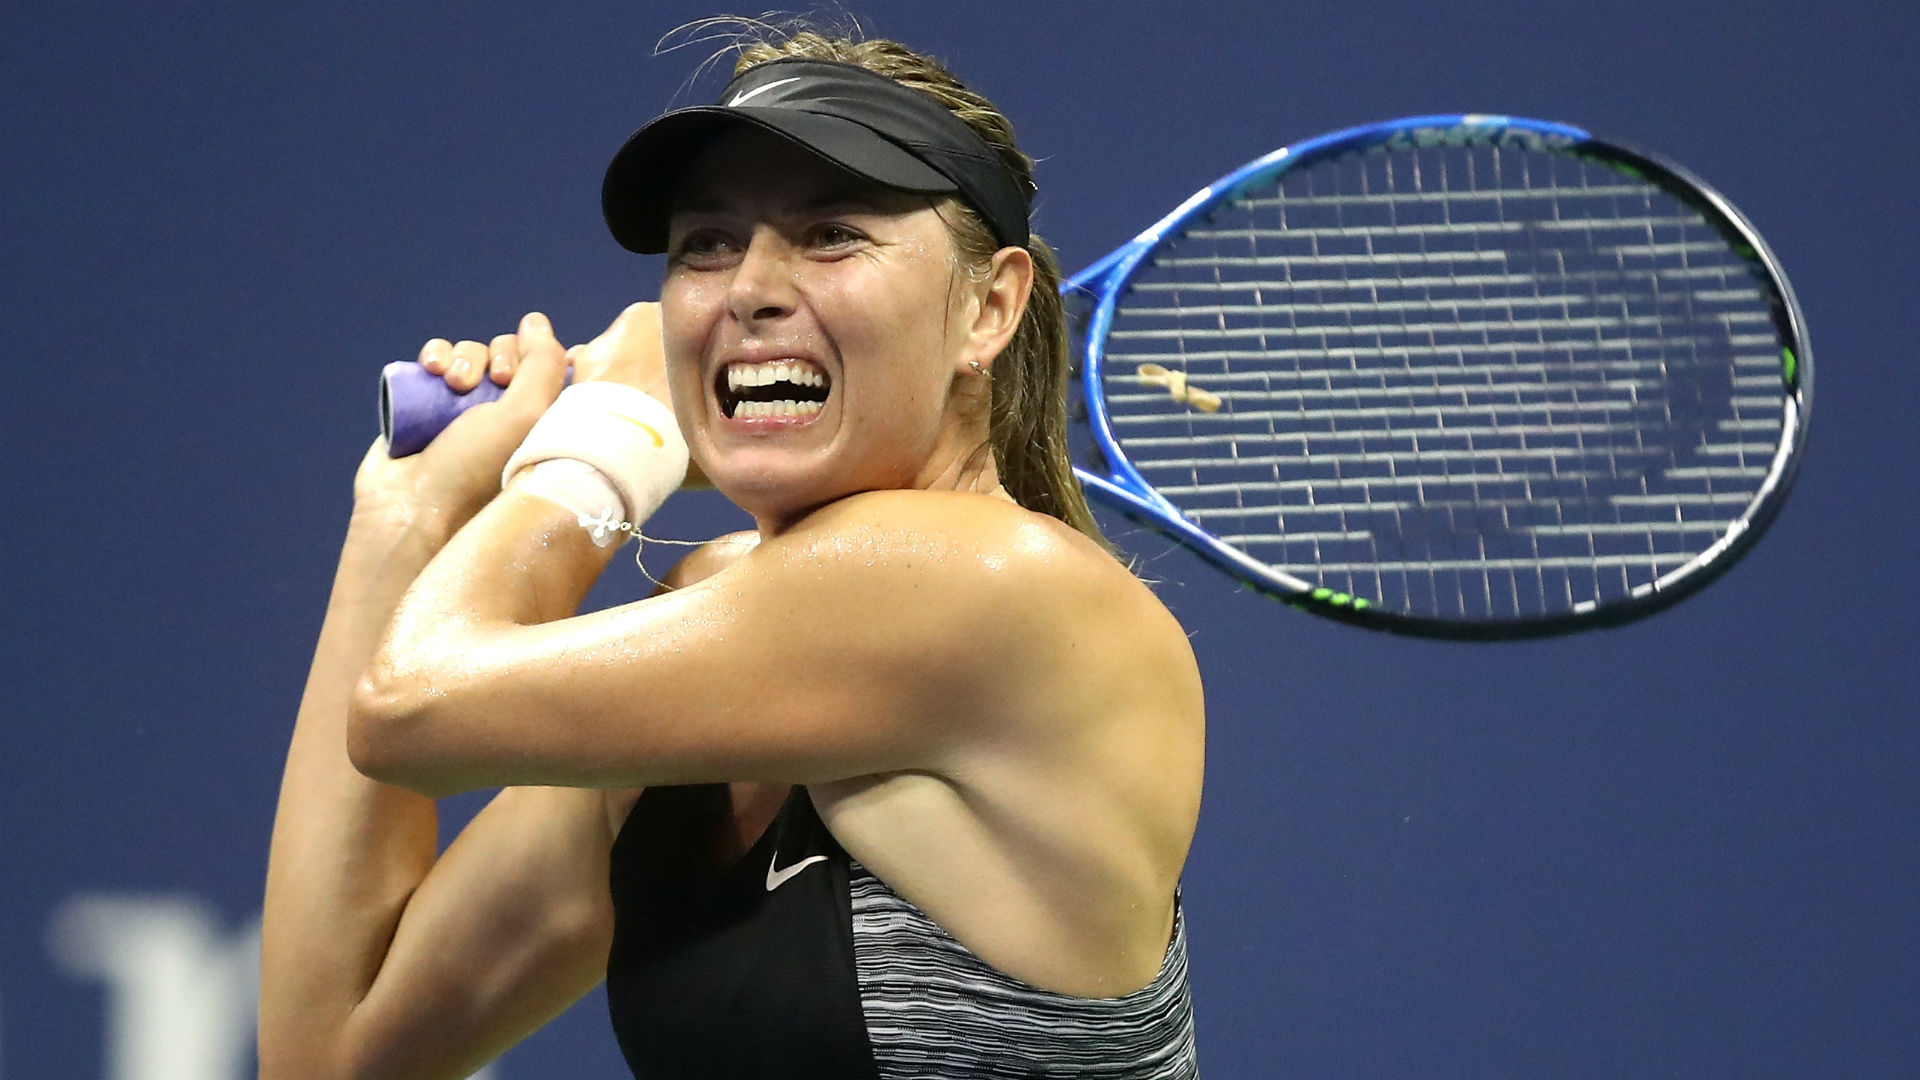 Sharapova's US Open run comes to an end